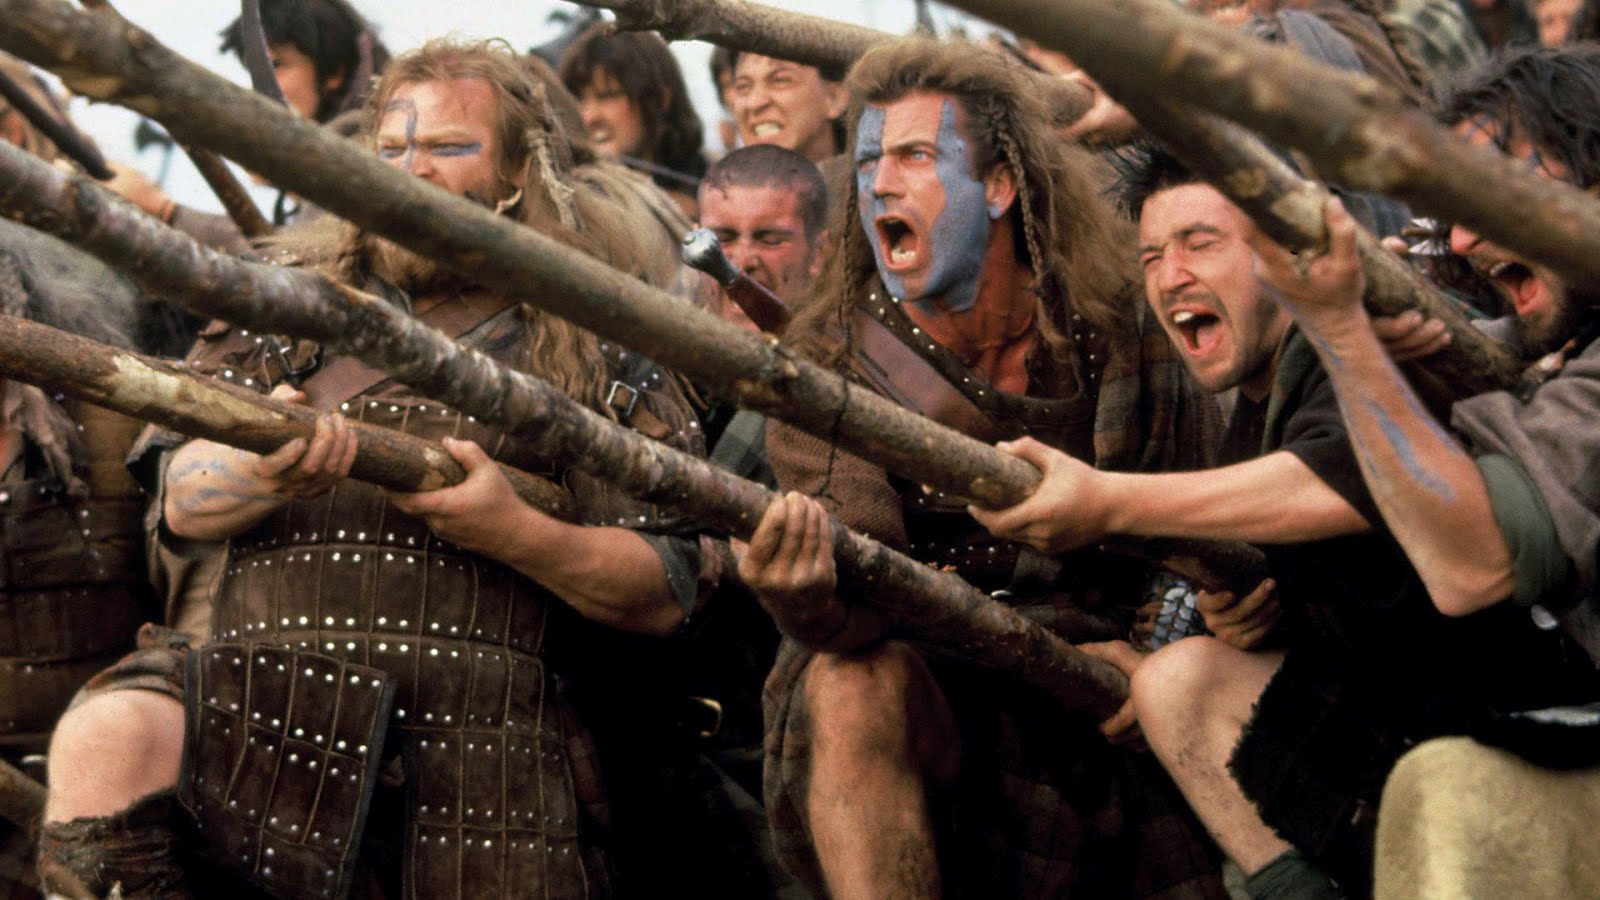 What Braveheart did for Scottish Independence